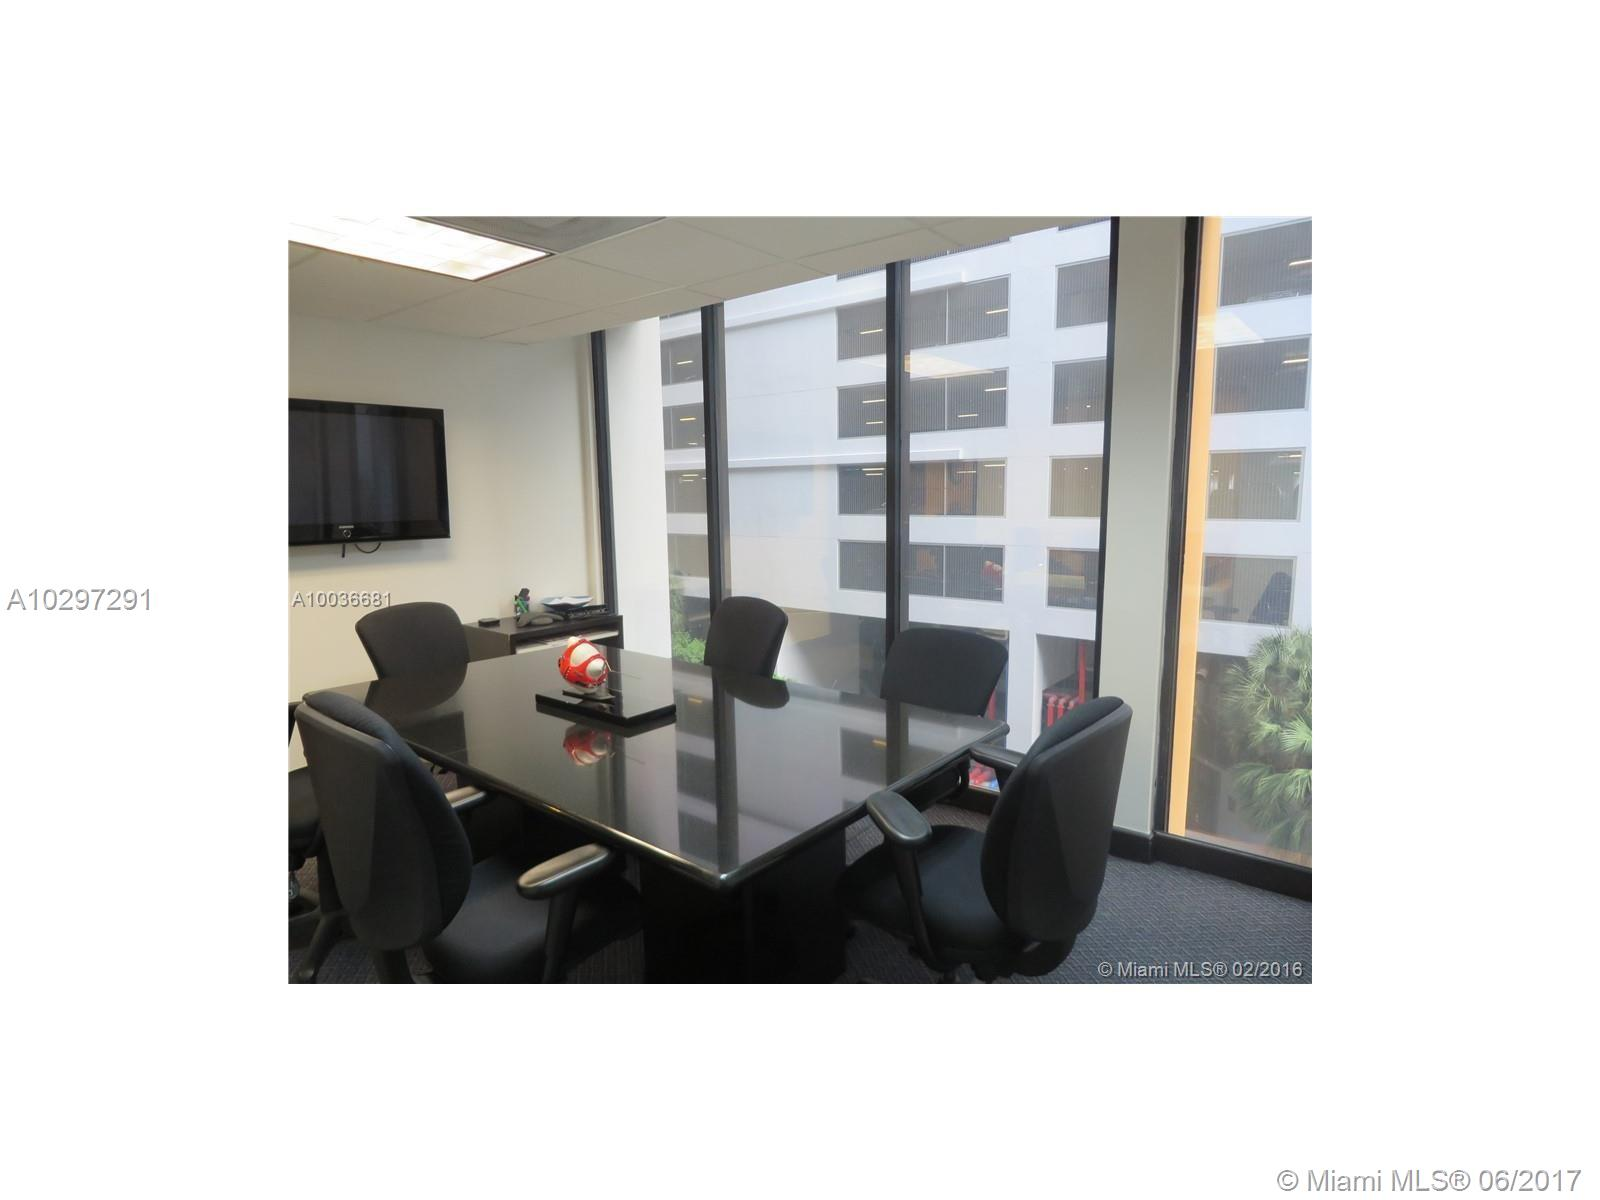 1110 BRICKELL AVE SUITE 430 I, Miami , FL 33131